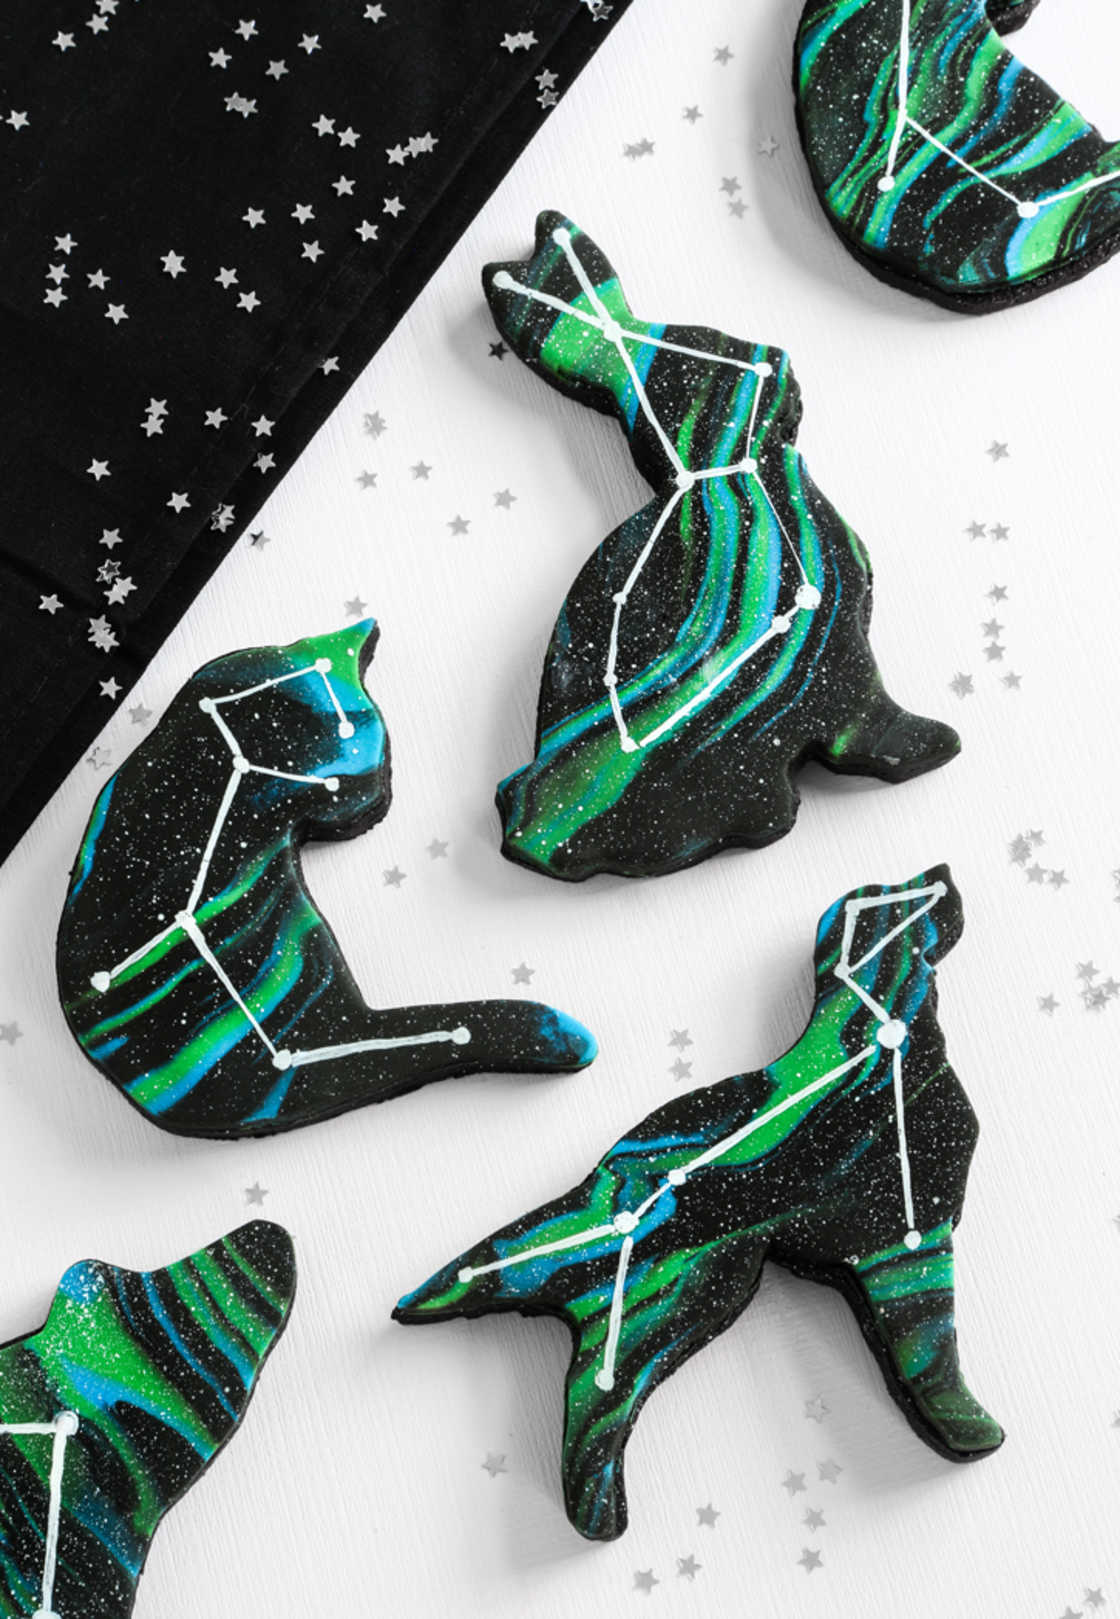 Animal Constellation Cookies - The beautiful starry cookies of Sprinklebakes